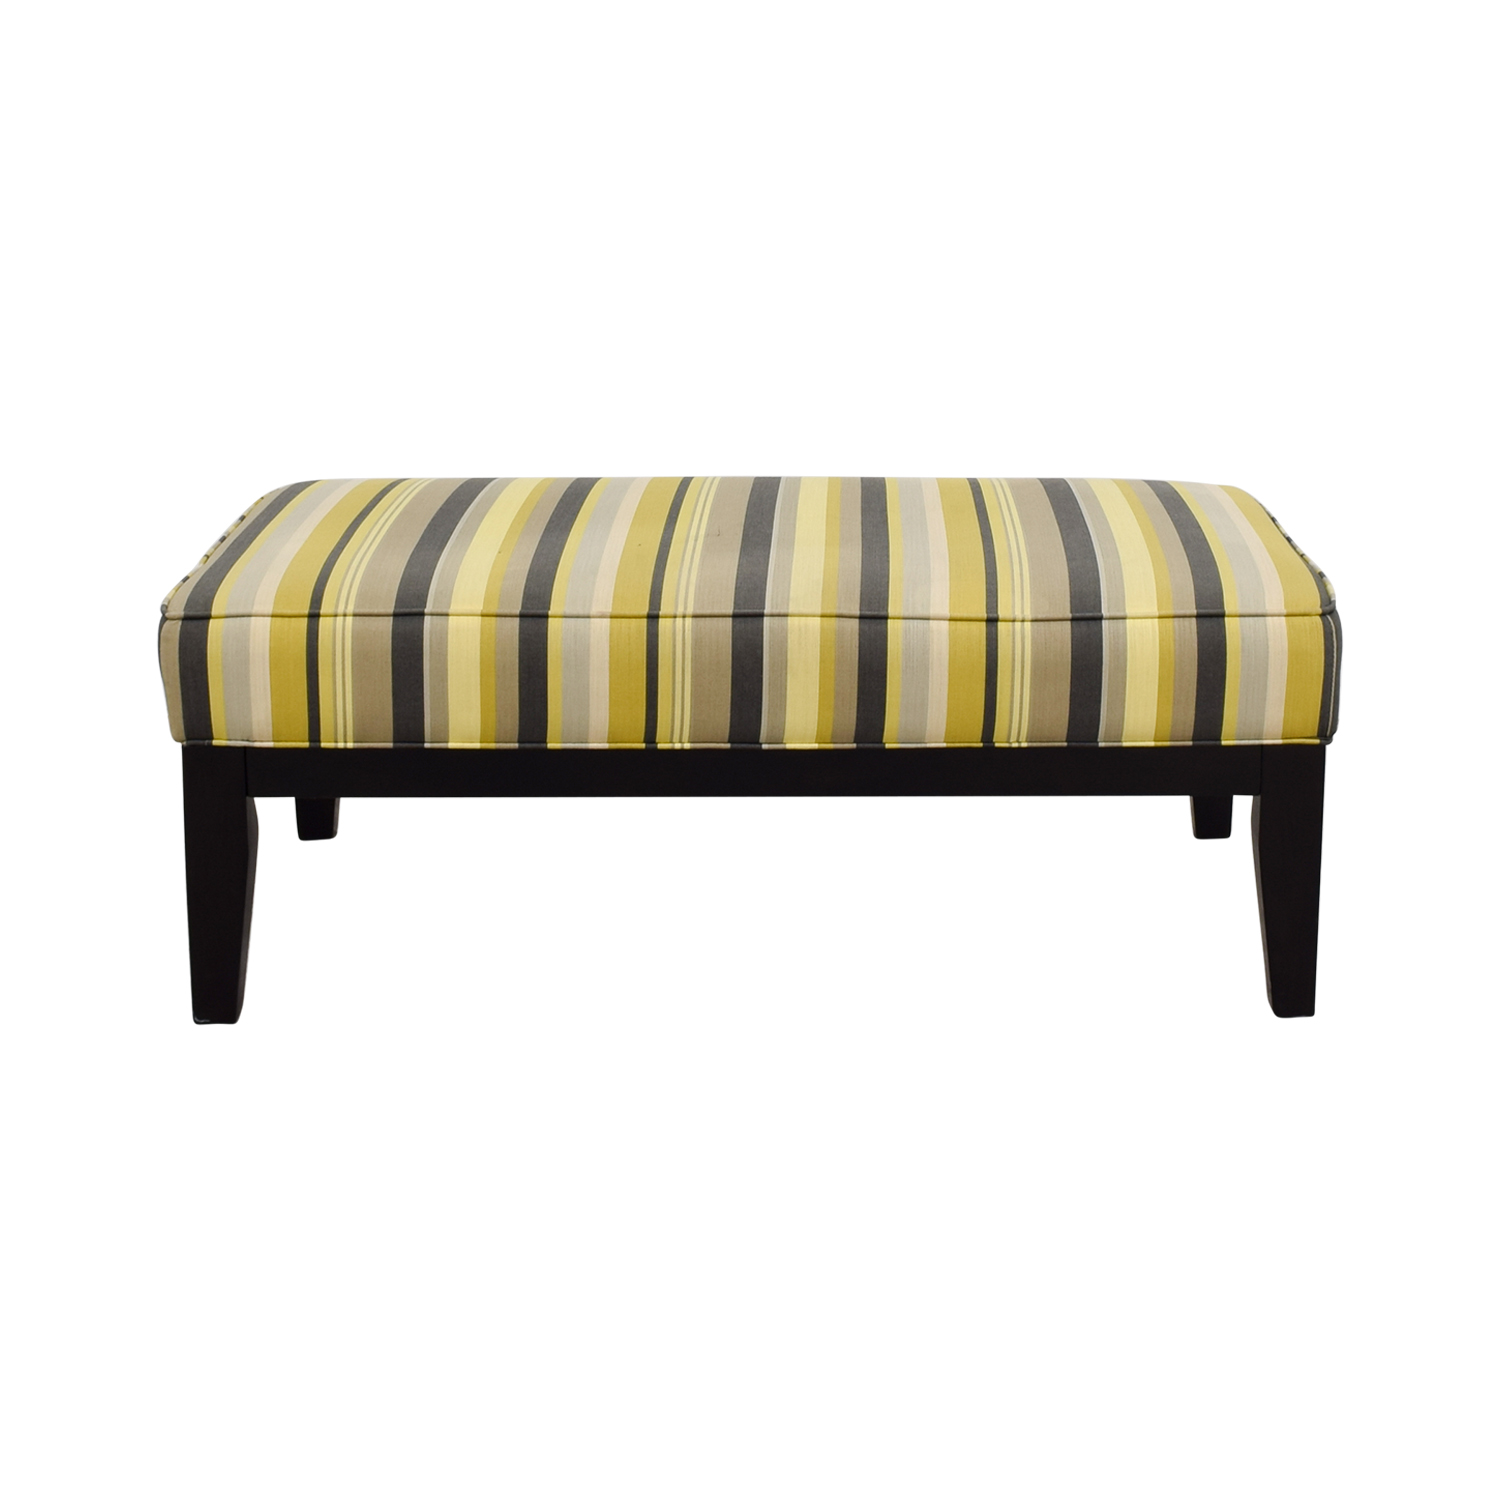 Raymour & Flanigan Yellow Green and Grey Striped Oversized Ottoman / Ottomans